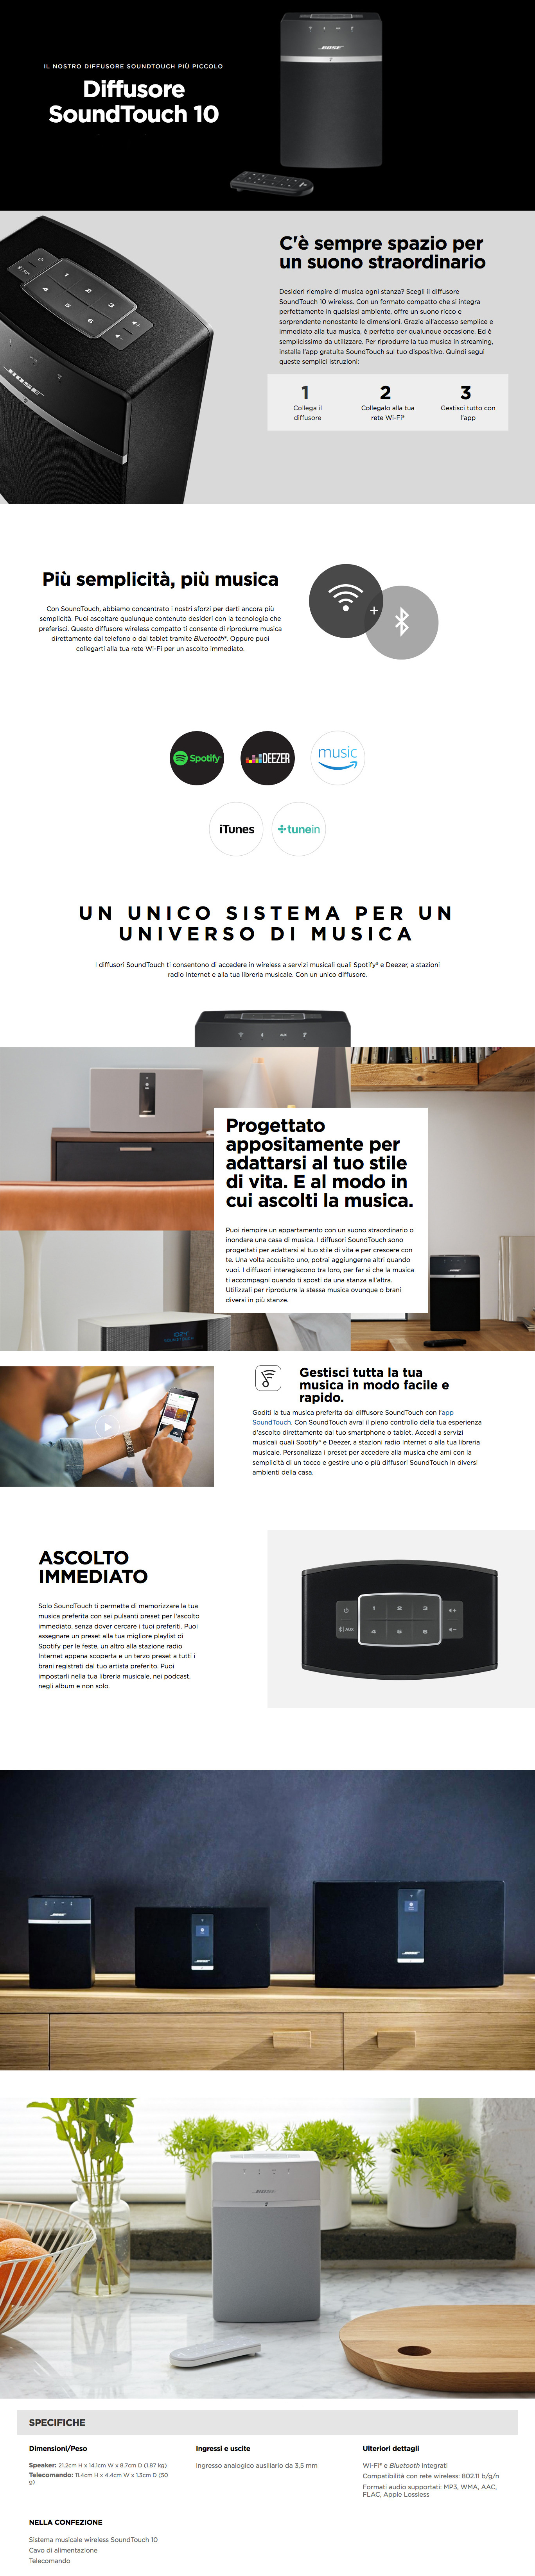 SoundTouch-10-Bose.jpg